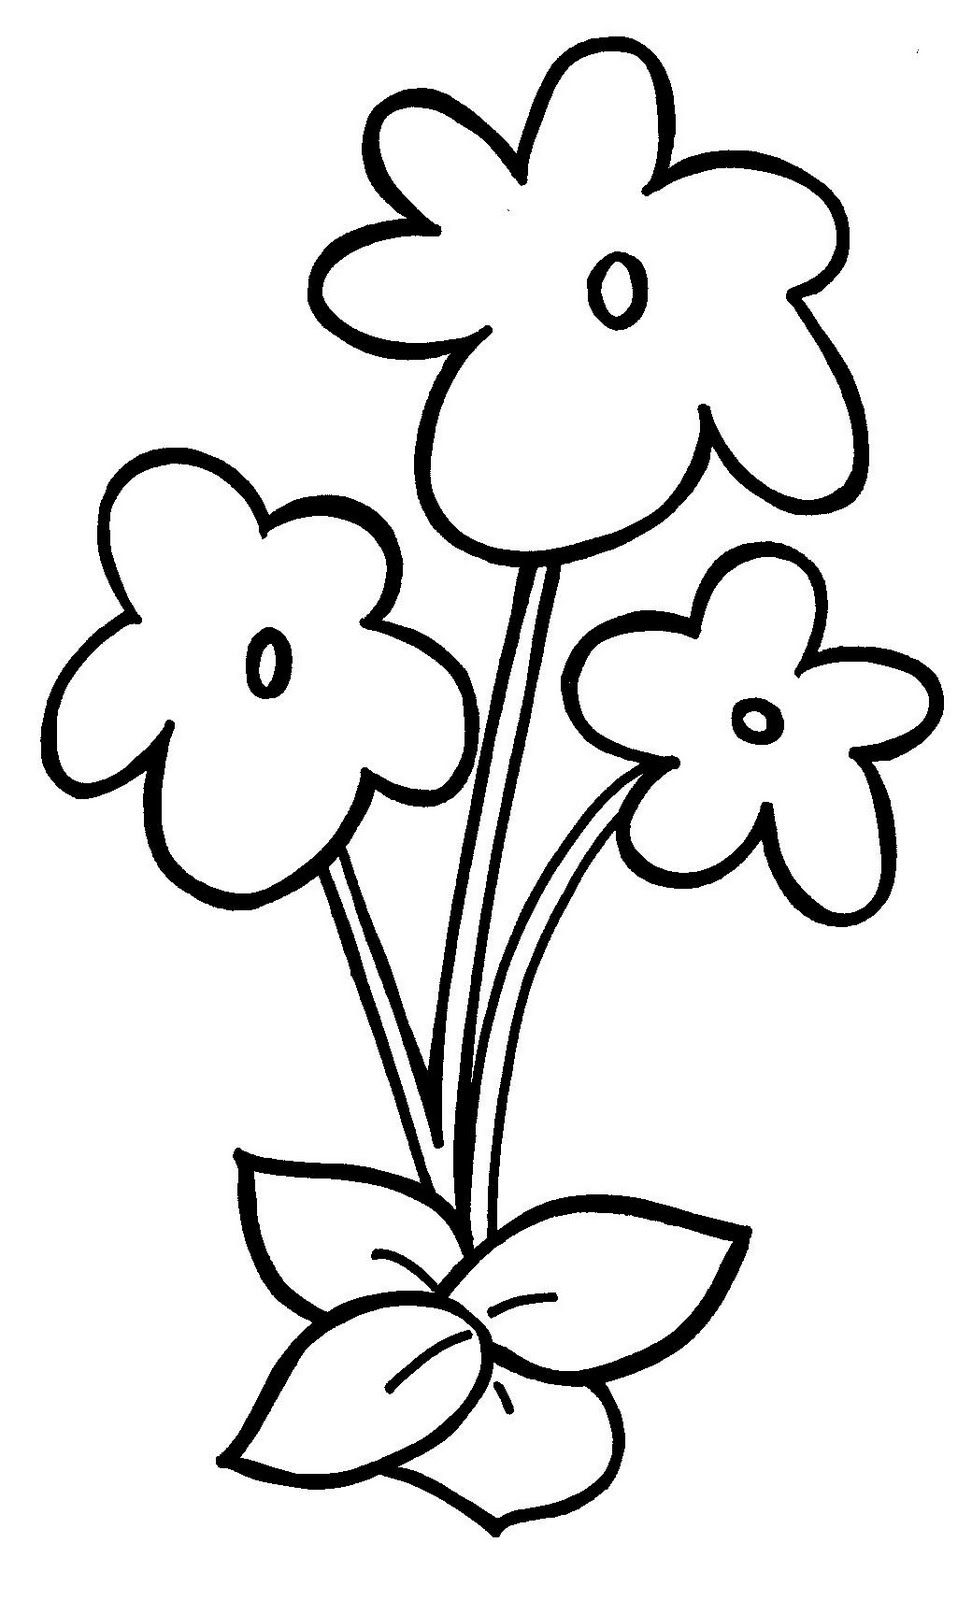 Schöne Blumen Ausmalbilder : Brilliant Beginnings Preschool Coloring Pages Has Cute Poem For